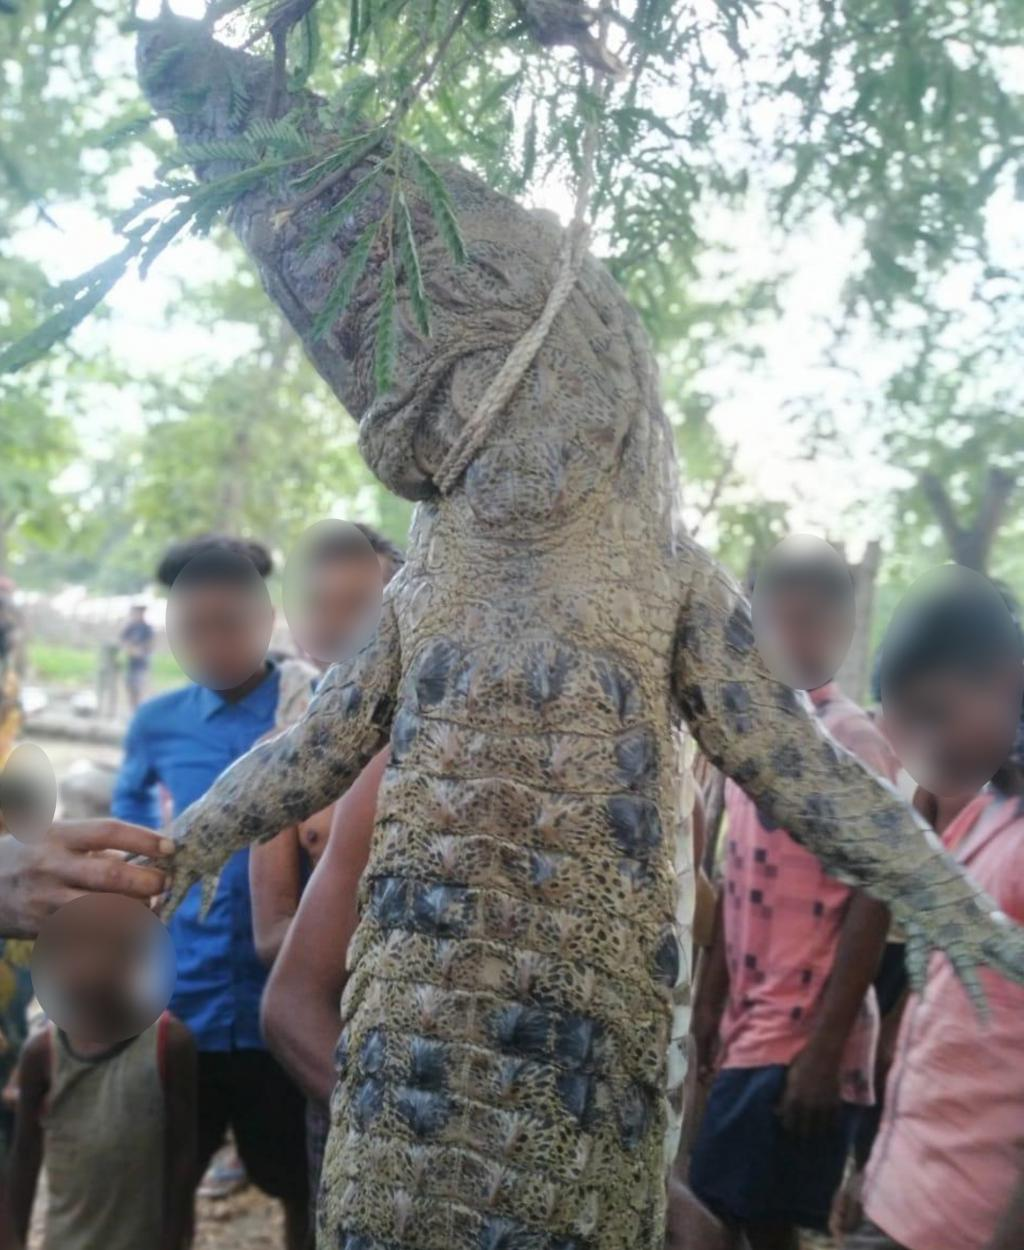 The crocodile was thrashed and killed by the villagers, who hung it on a tree in the village Photo: Ashis Senapati